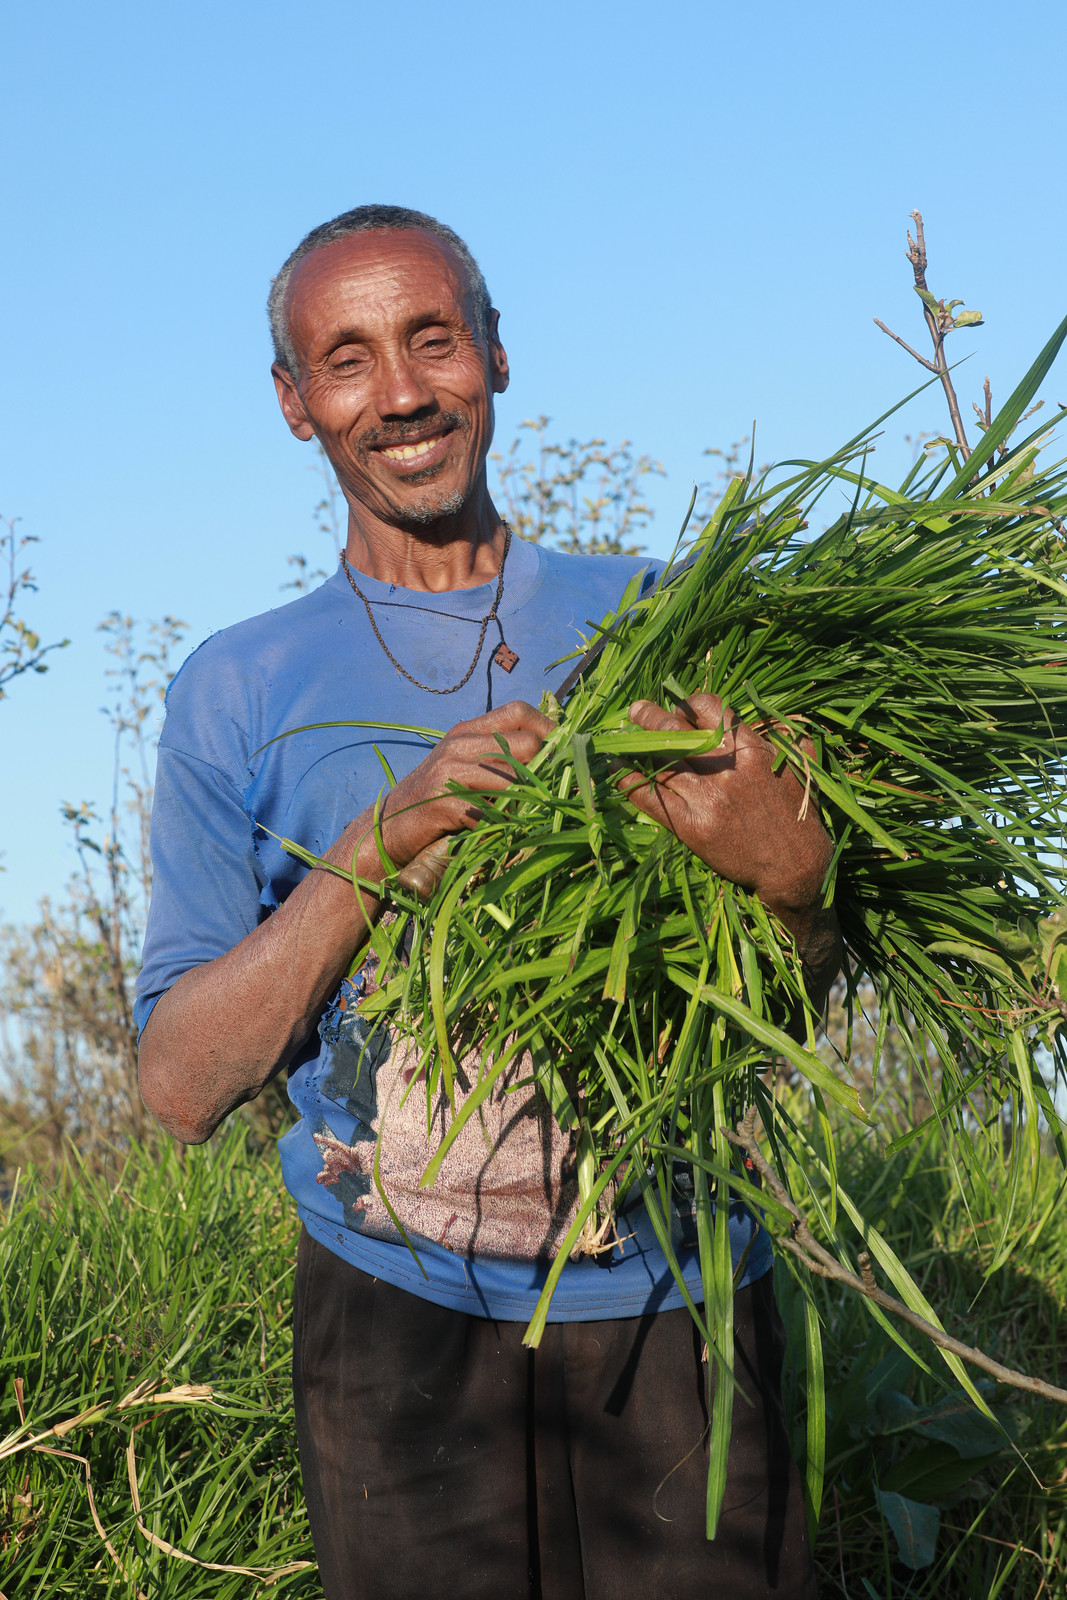 A farmer holding improved grass